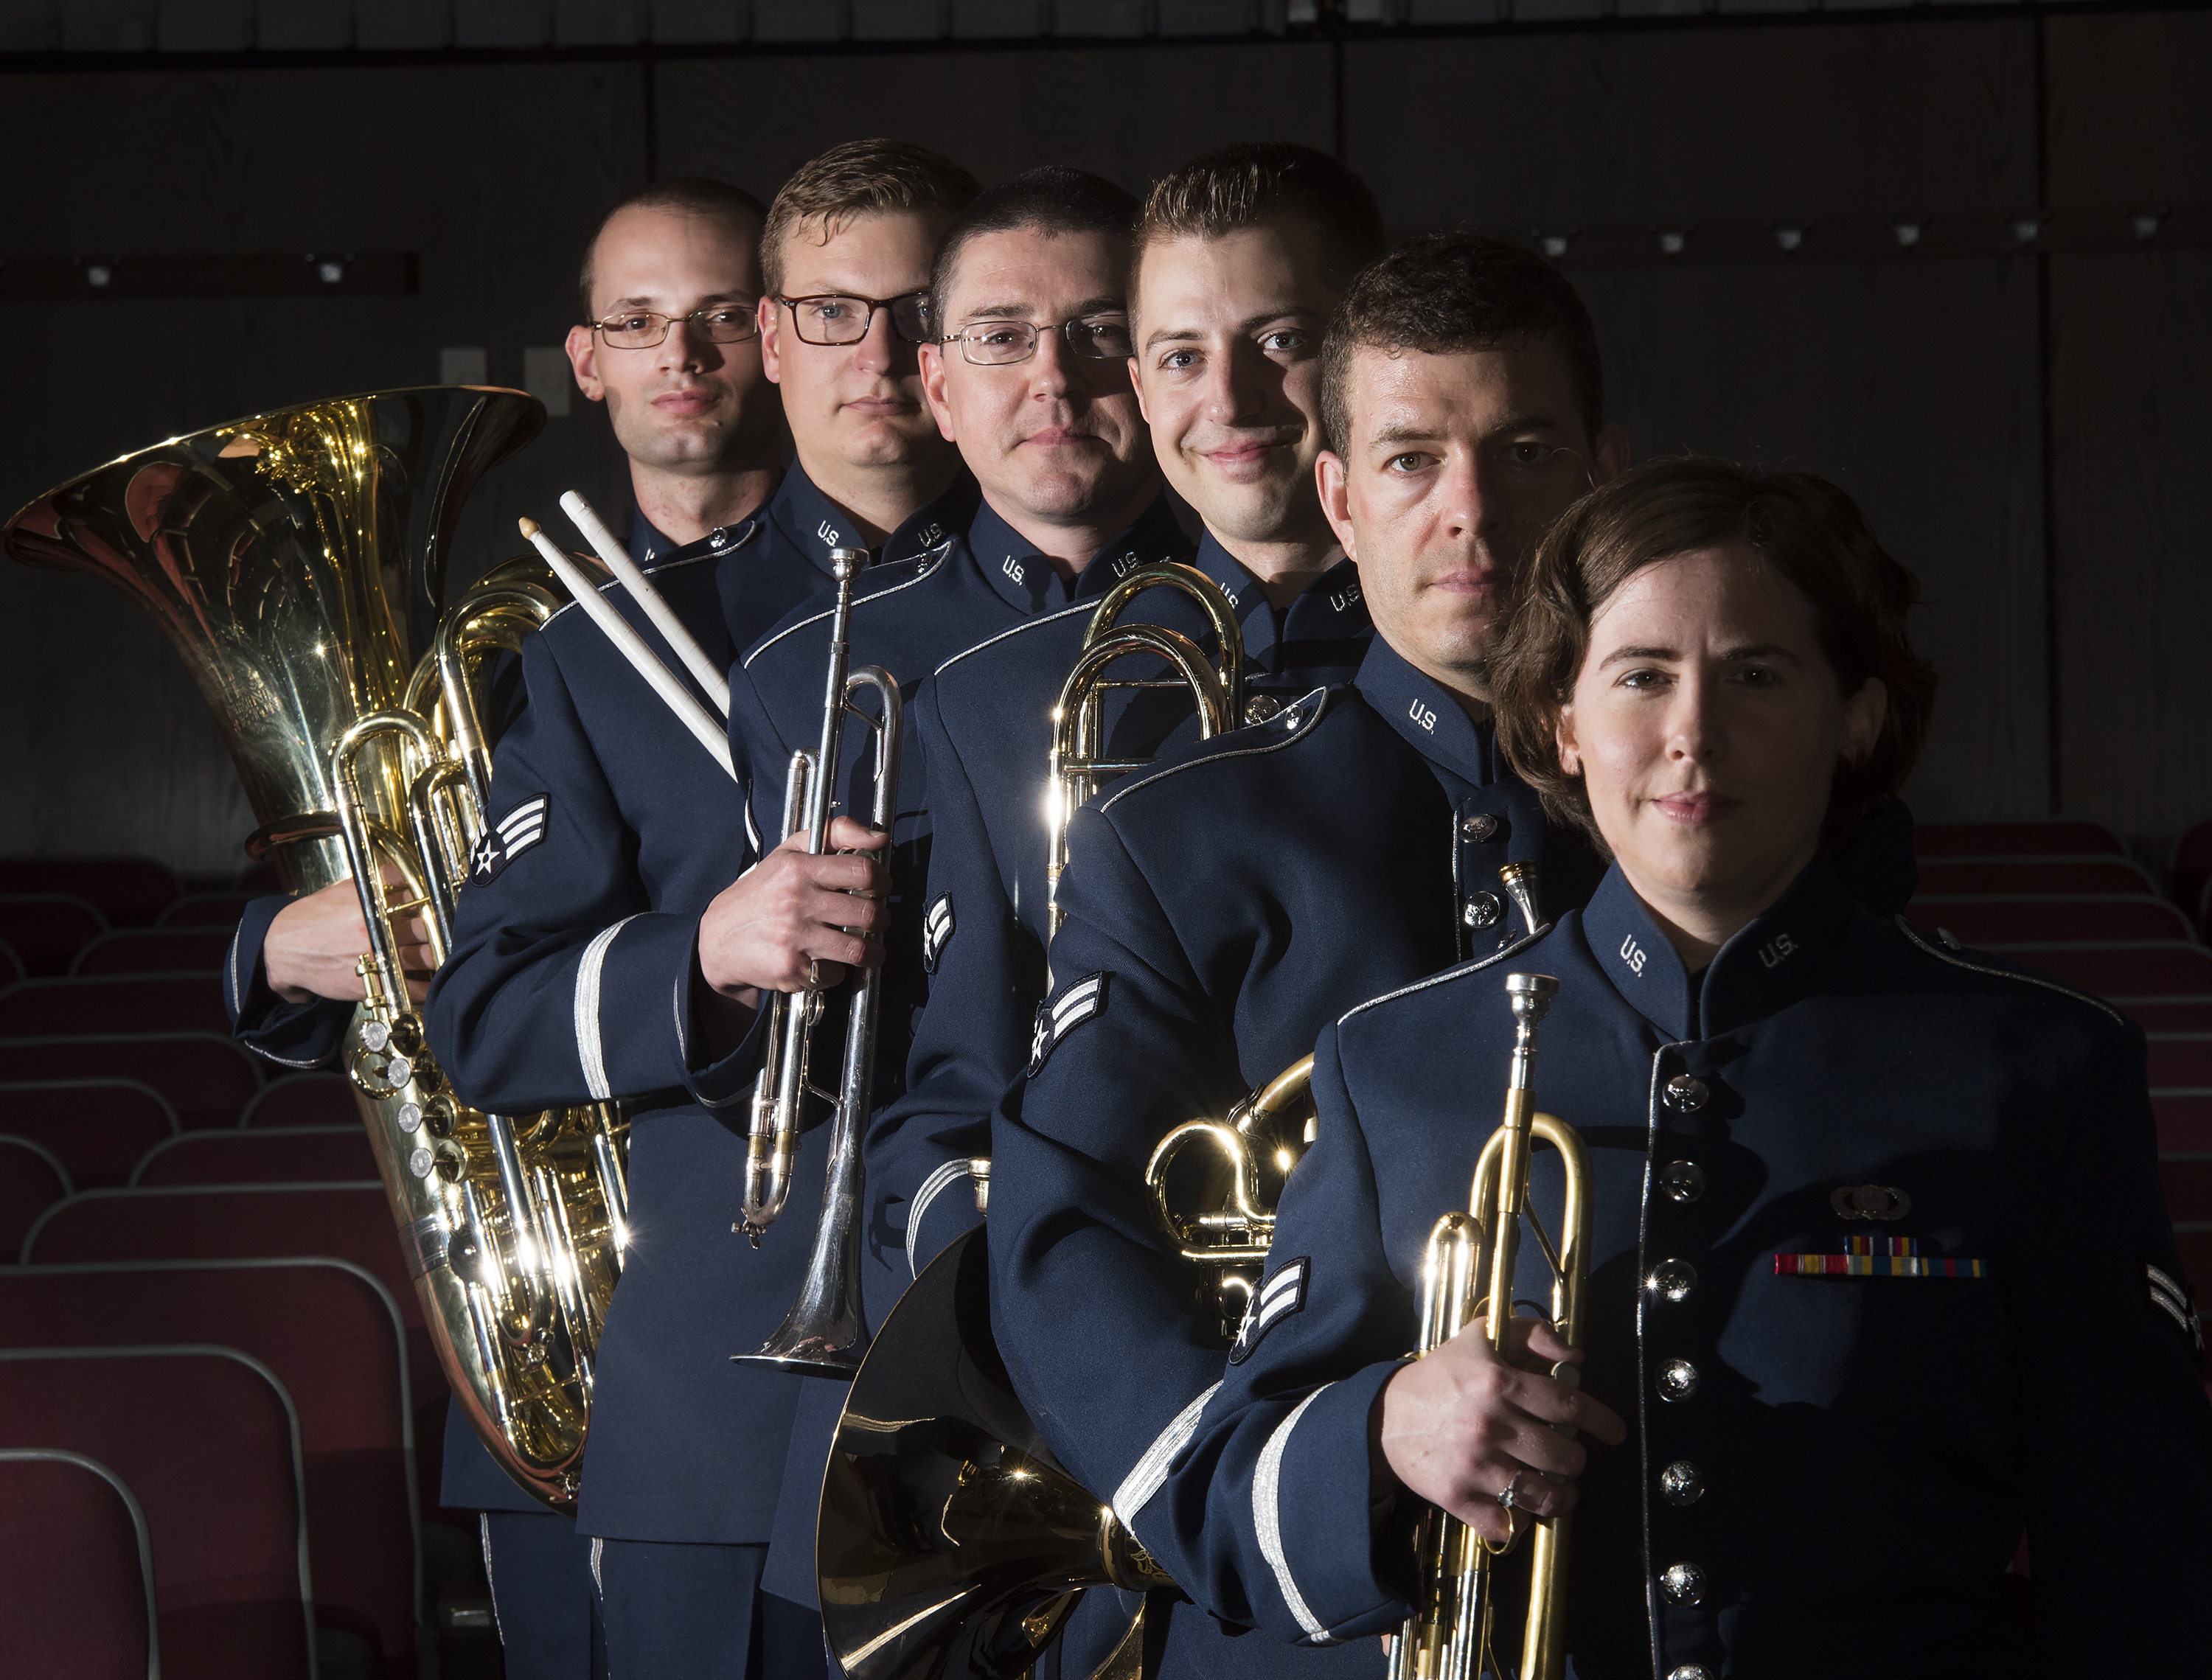 Air Force Bands